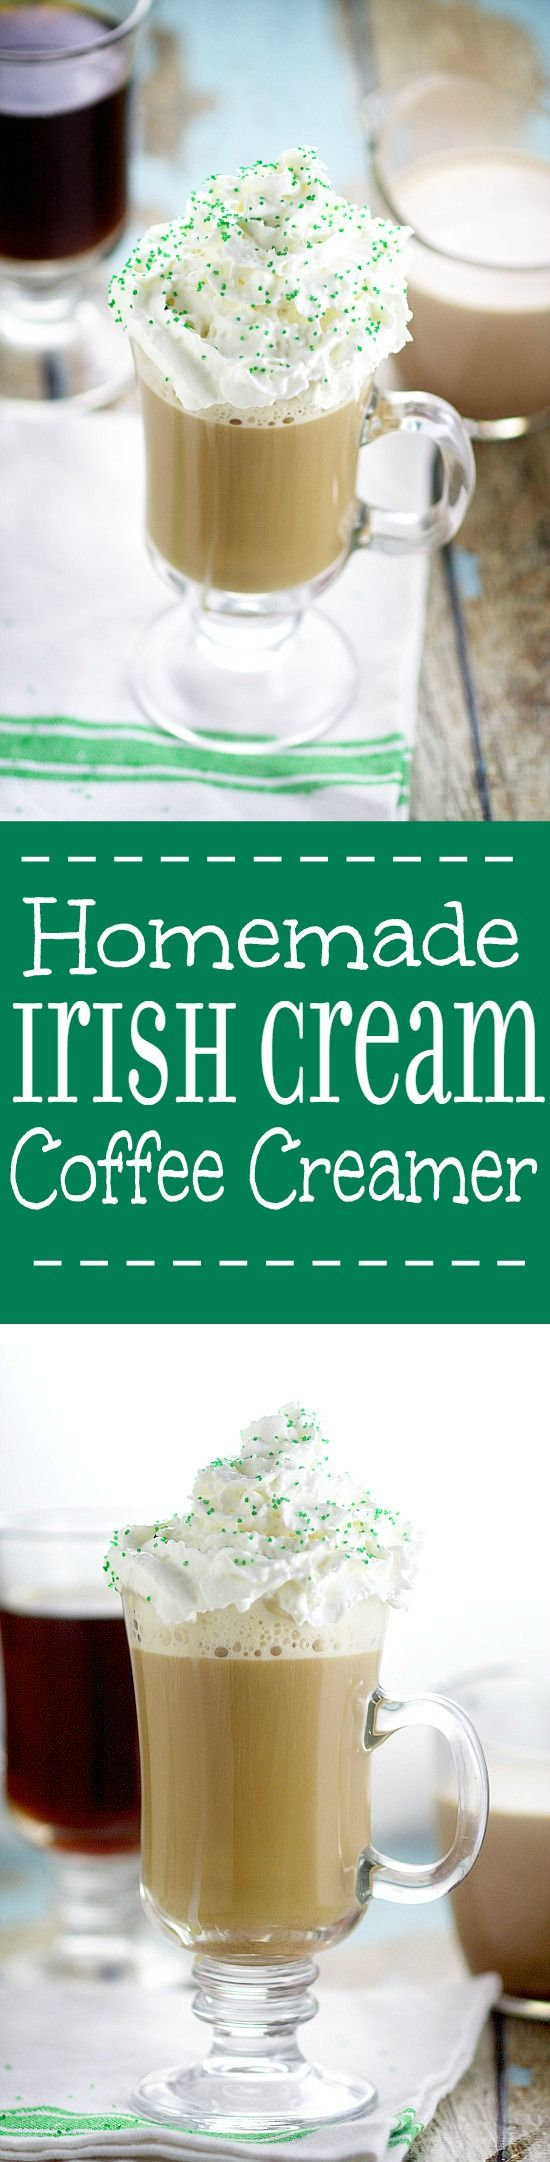 Sour cream coffee cake the frugal chef - Homemade Irish Cream Coffee Creamer